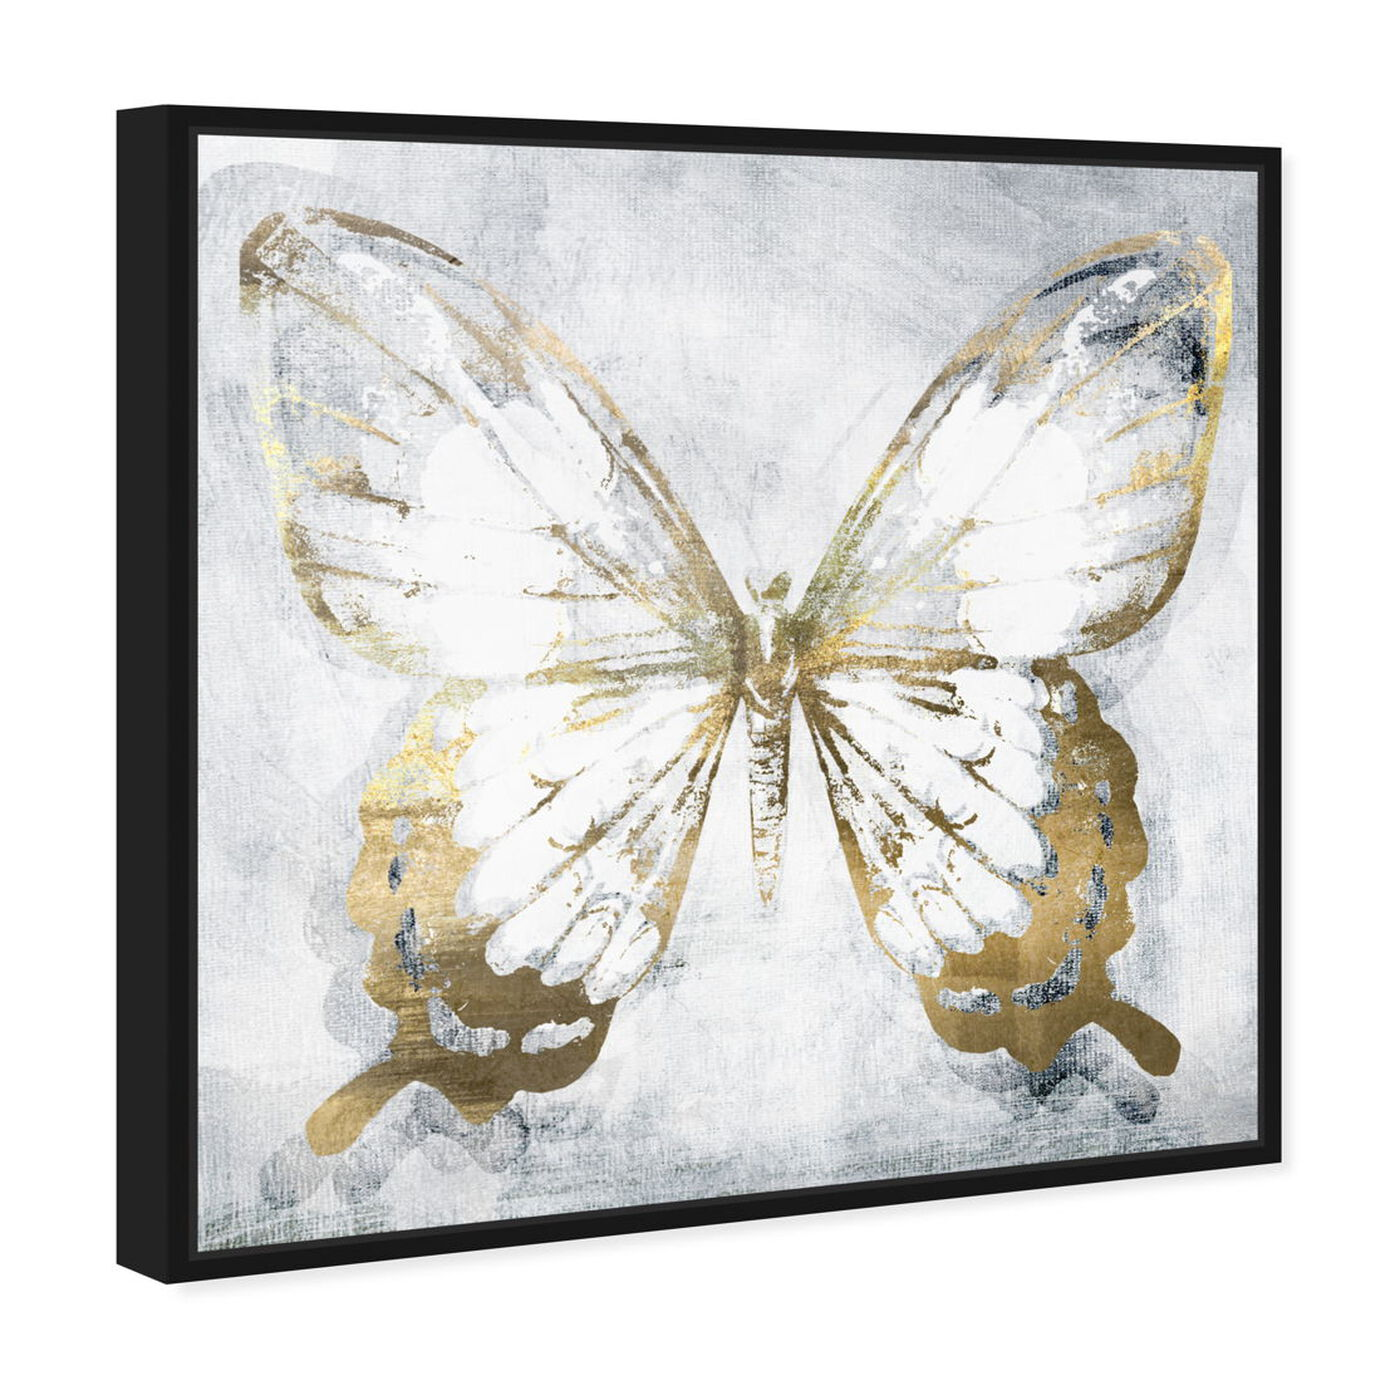 Angled view of Butterfly Eroded featuring animals and insects art.